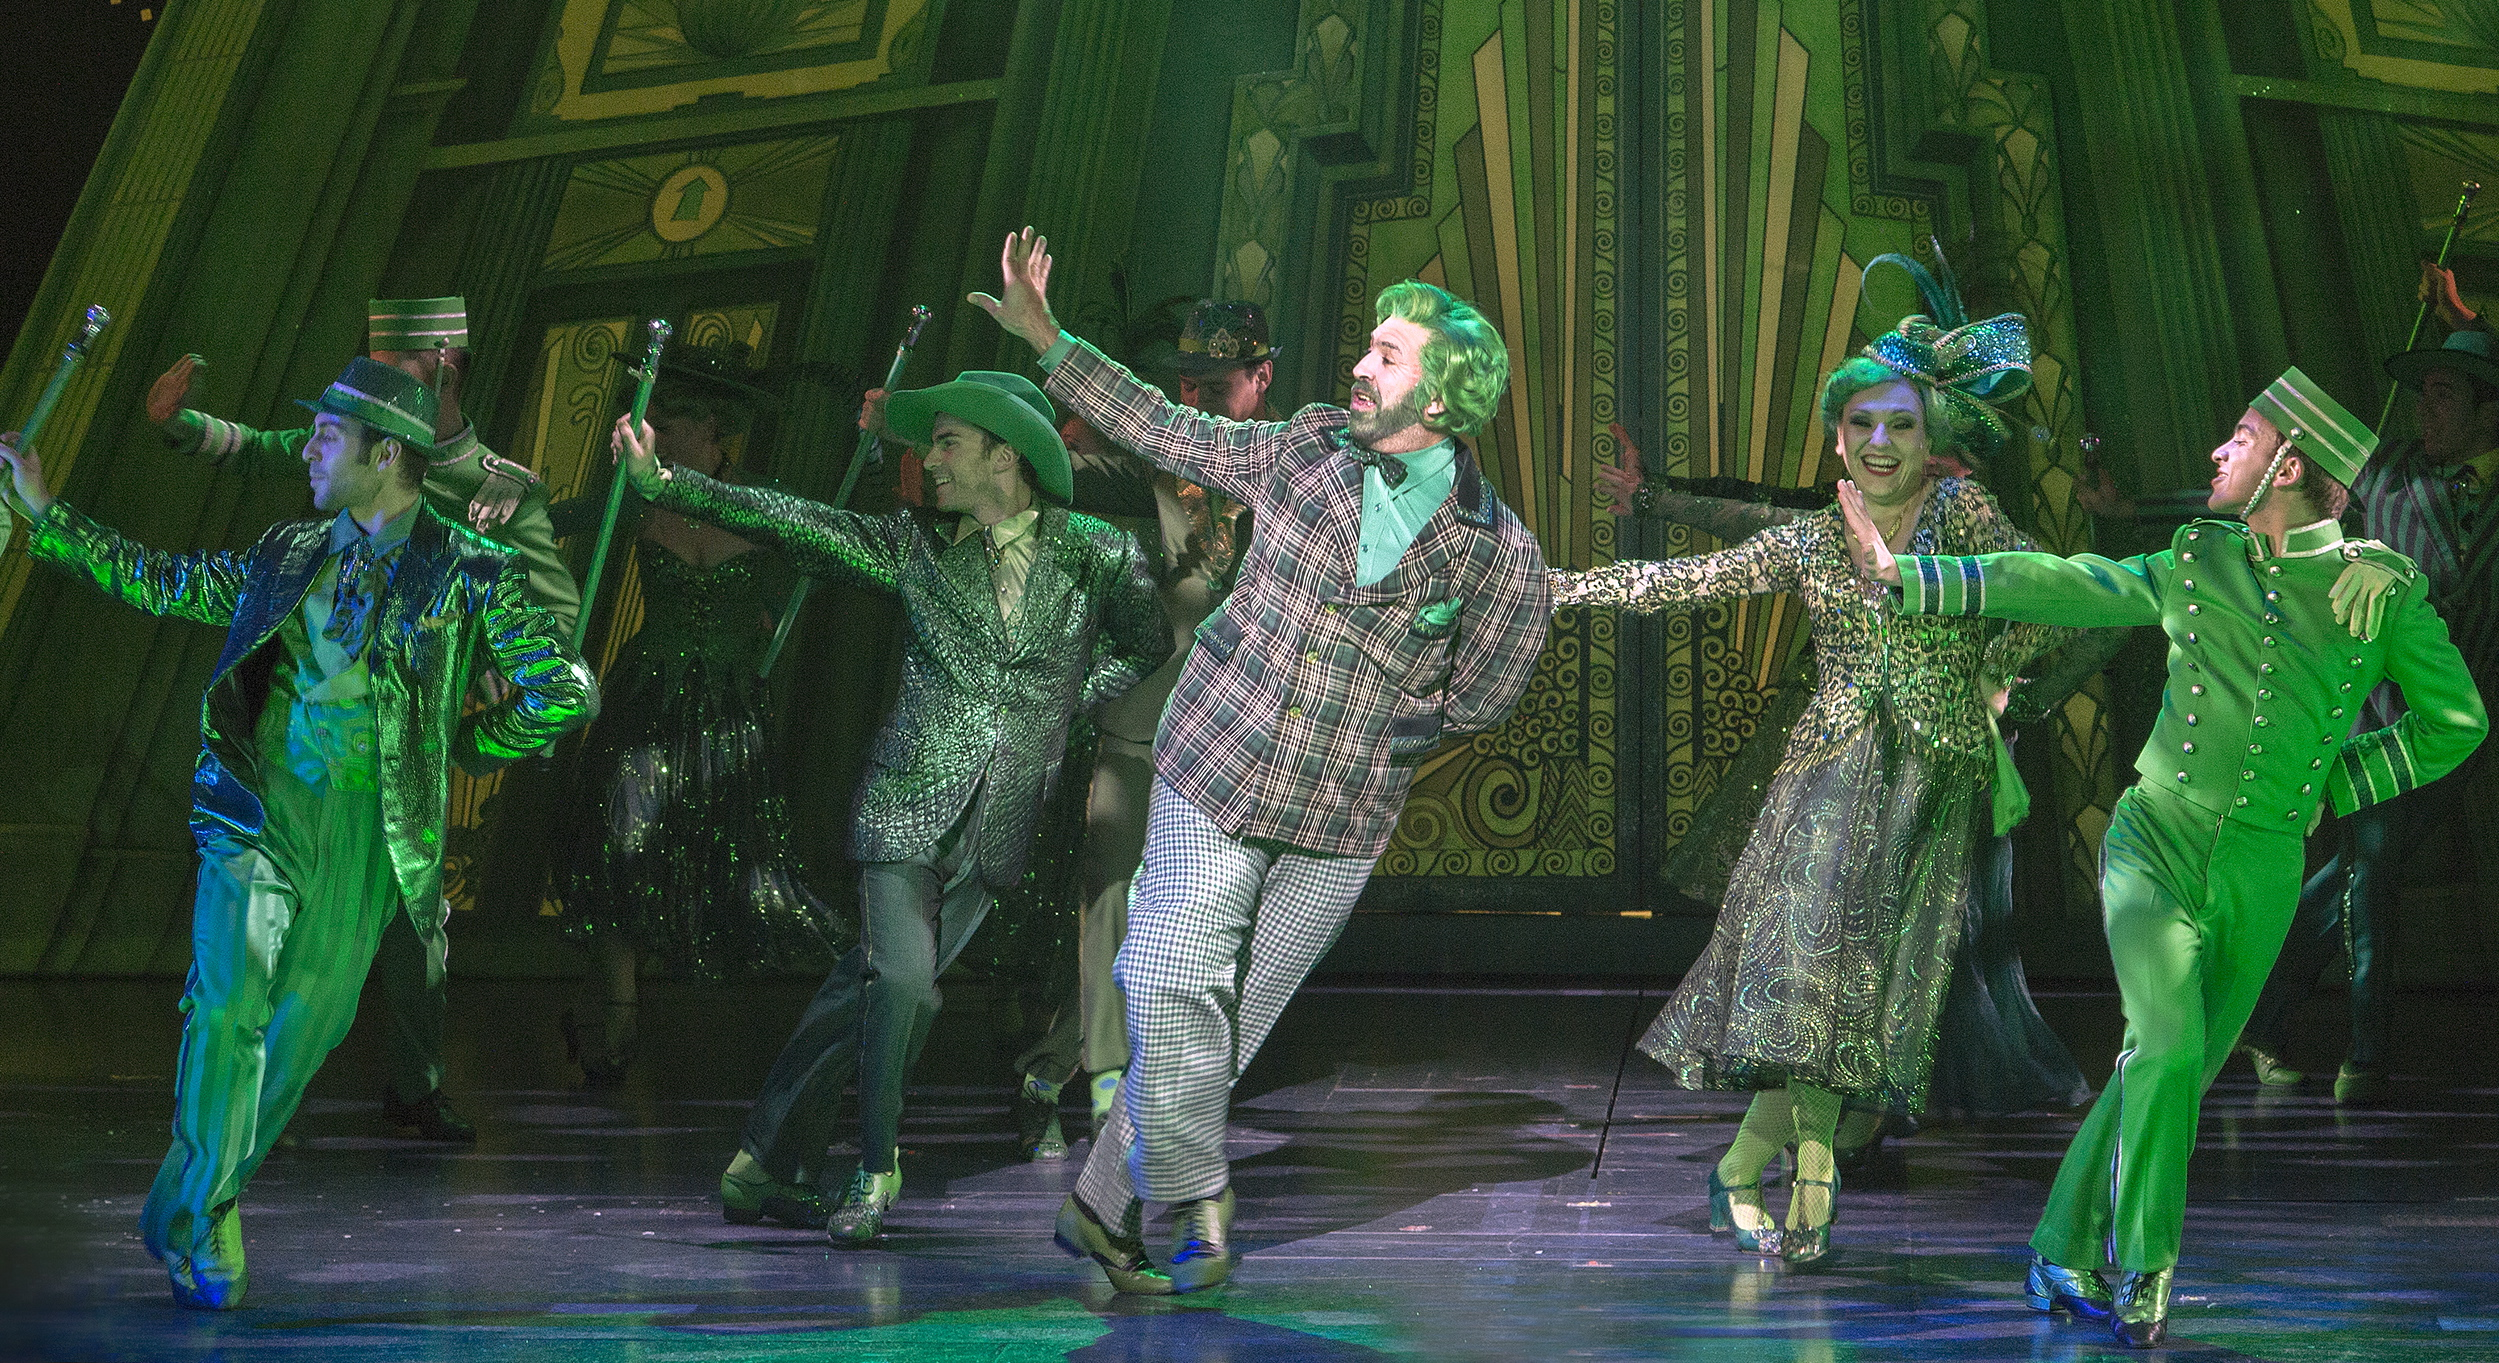 """It's all green light in Emerald City when the remake of """"The Wizard of Oz"""" visits the Steel City. And should you want wizardry newer than Oz, there's plenty of that scheduled for Pittsburgh stages too."""